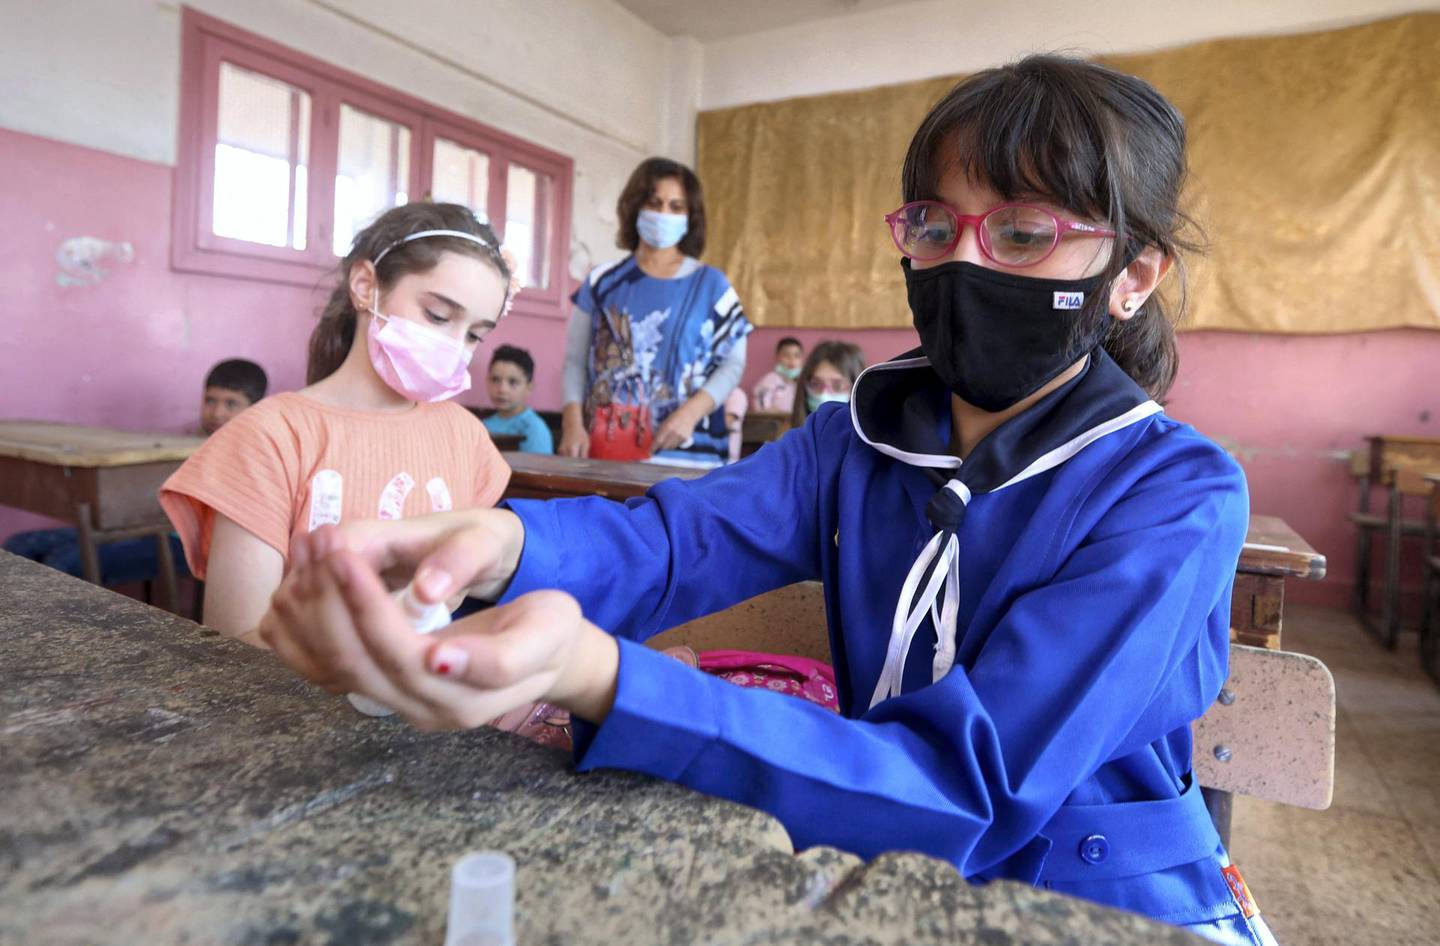 Syrian pupils, some wearing protective face masks, disinfect their hands in class in the capital Damascus on September 13, 2020, during the first day of the school year. (Photo by LOUAI BESHARA / AFP)